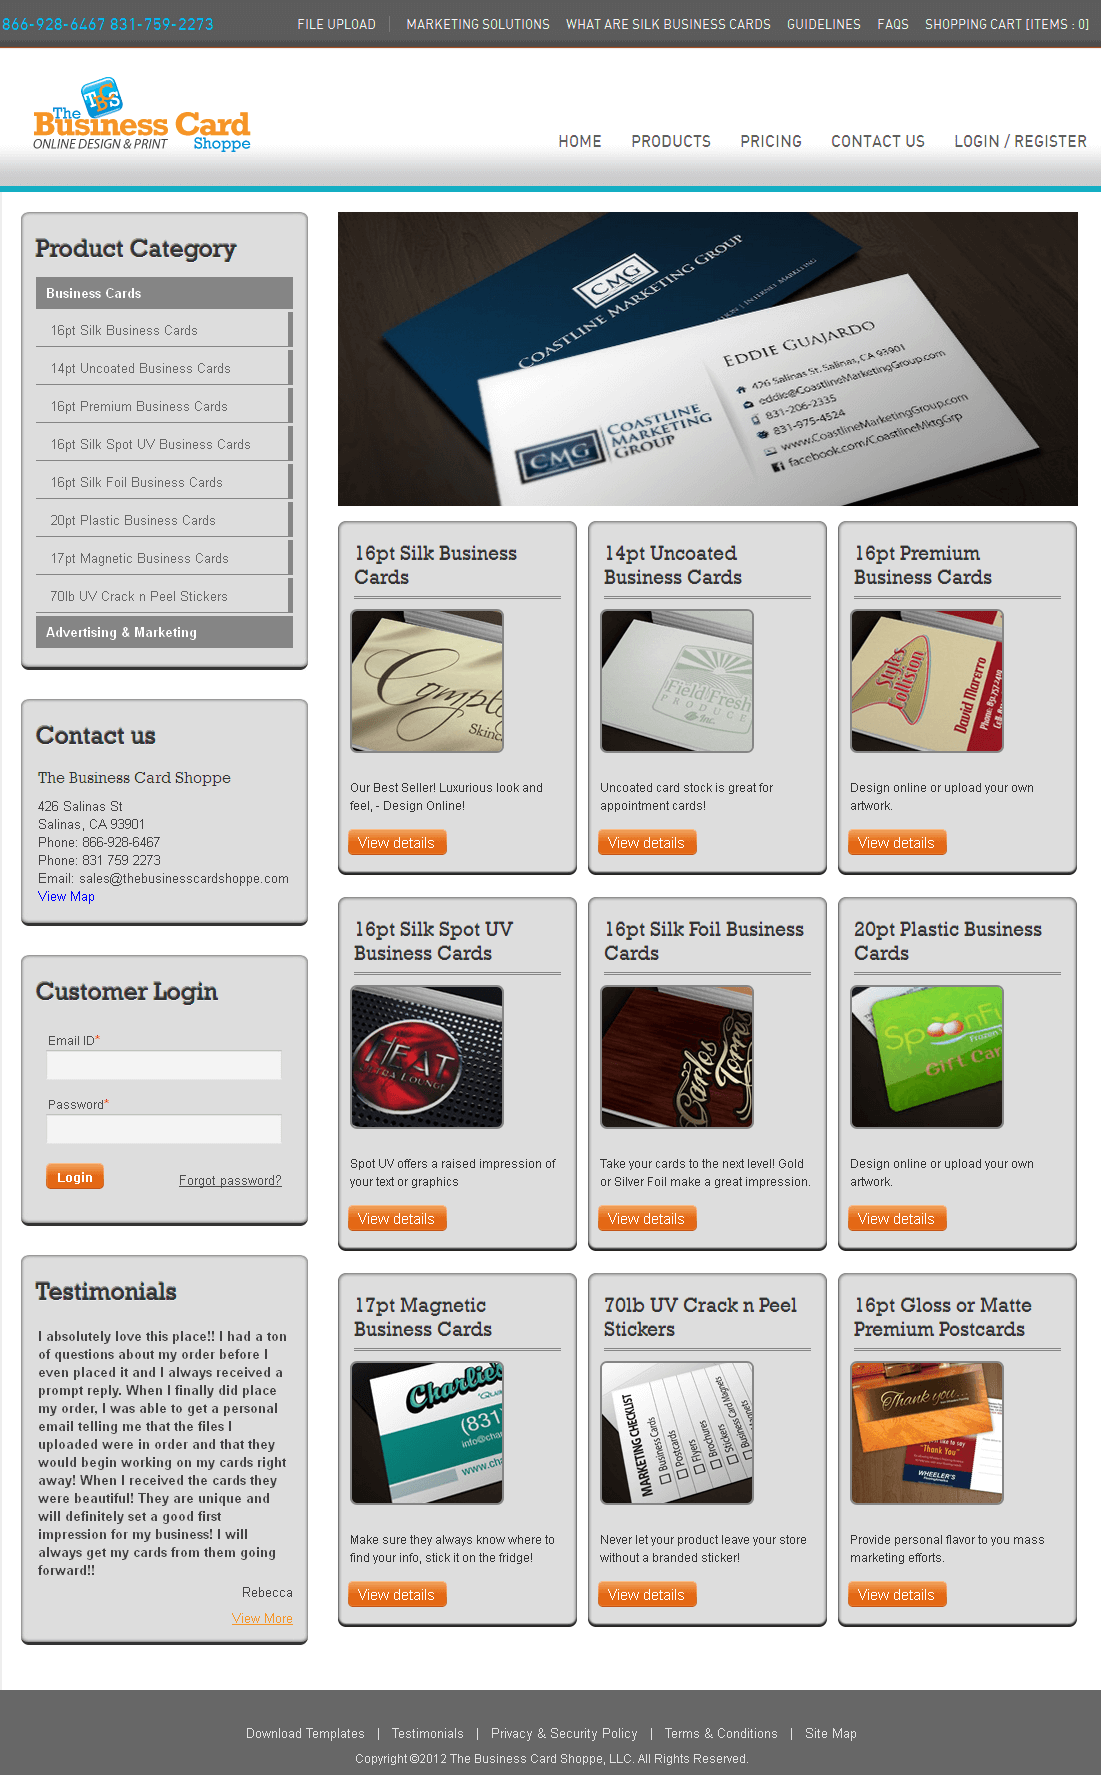 Magento Website for 'The Business Card' – Online Design & Printing